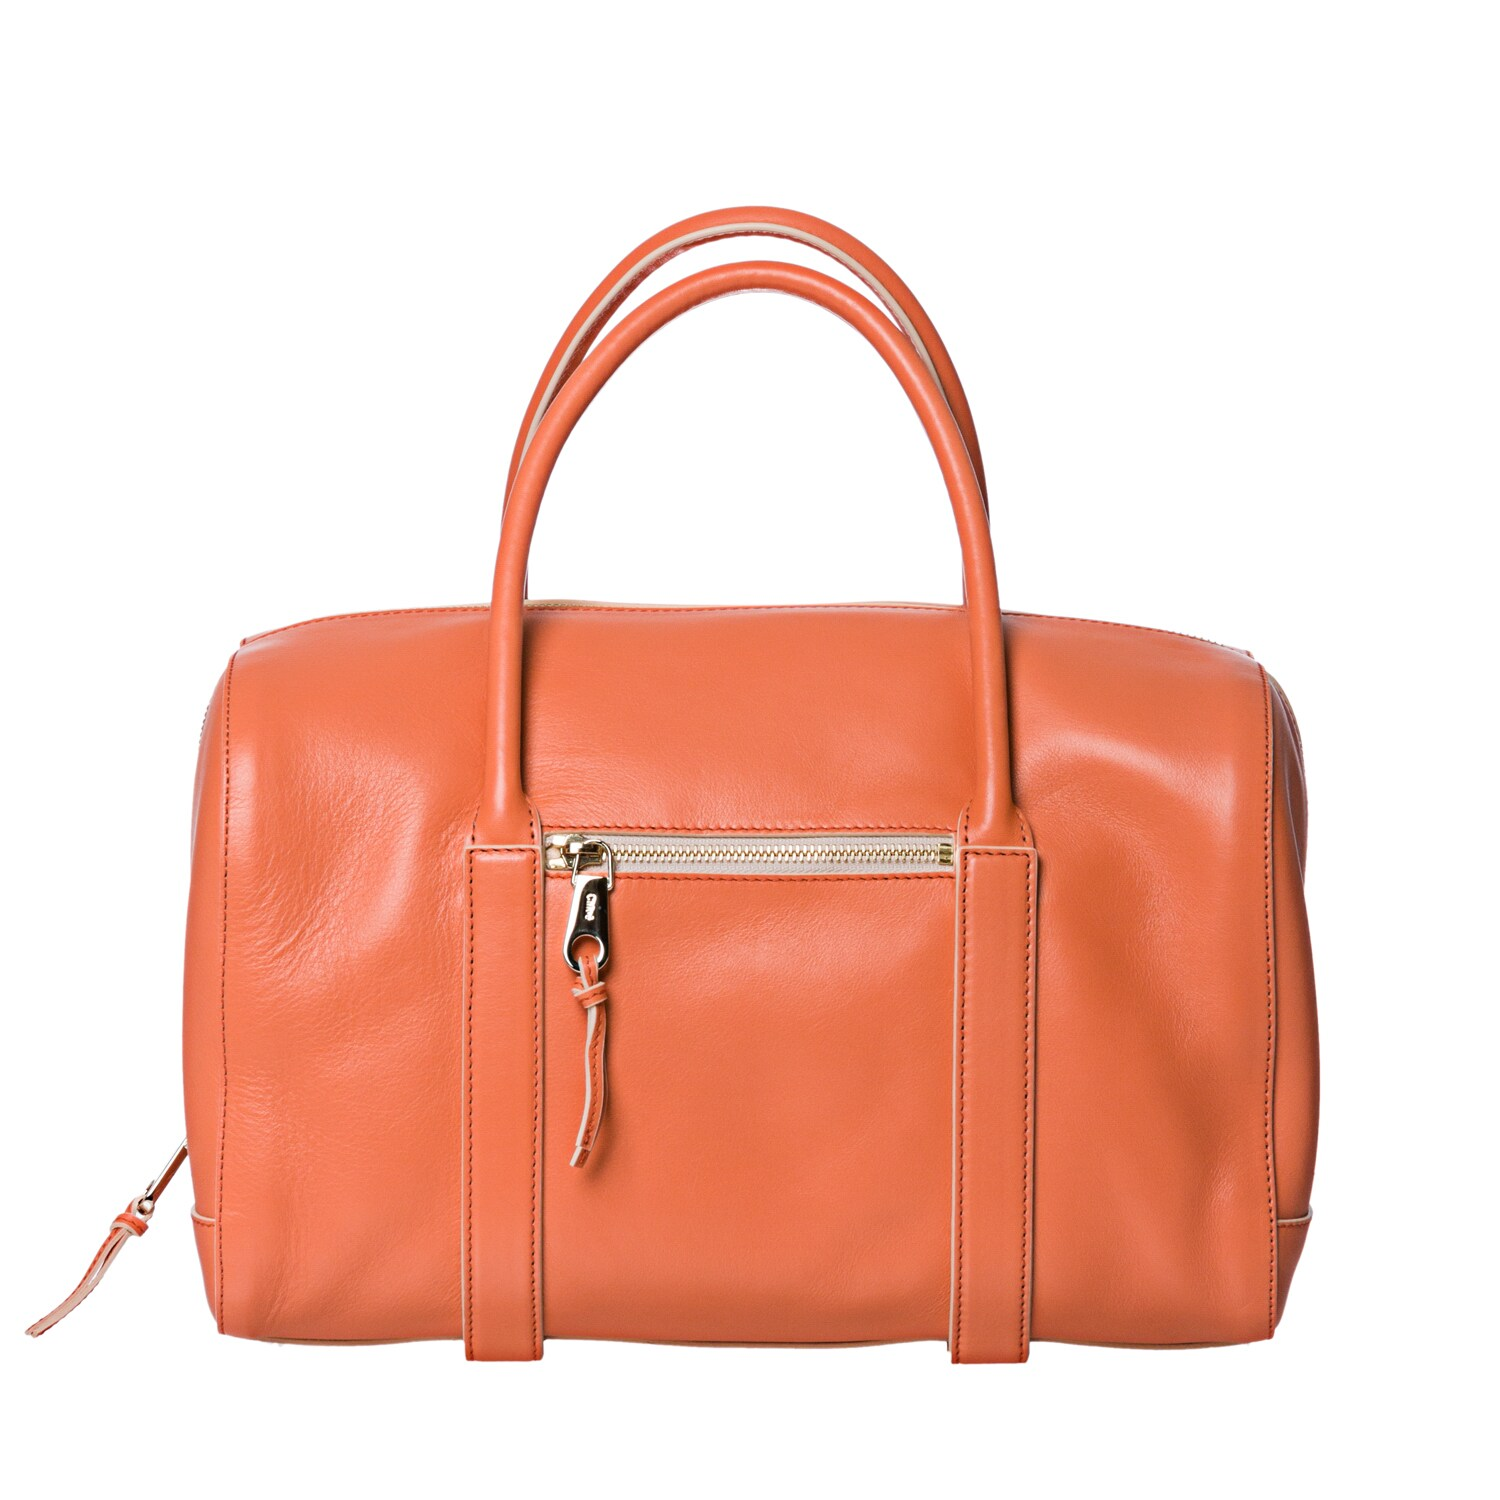 Chloe 'Madeline' Papaya Leather Runway Satchel - Thumbnail 0